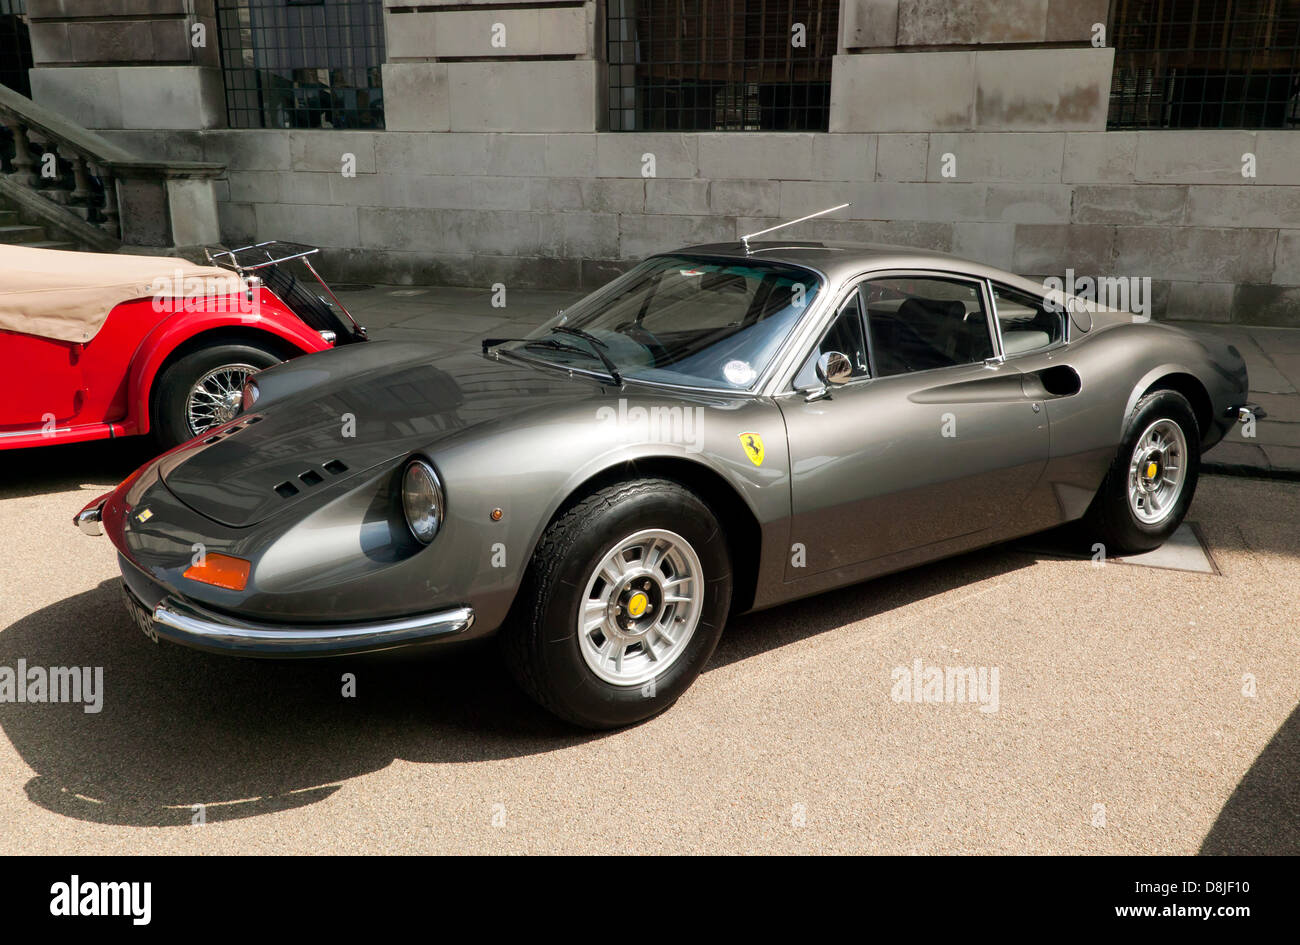 A Ferrari Dino on display at the Old Royal Naval College, Greenwich. - Stock Image